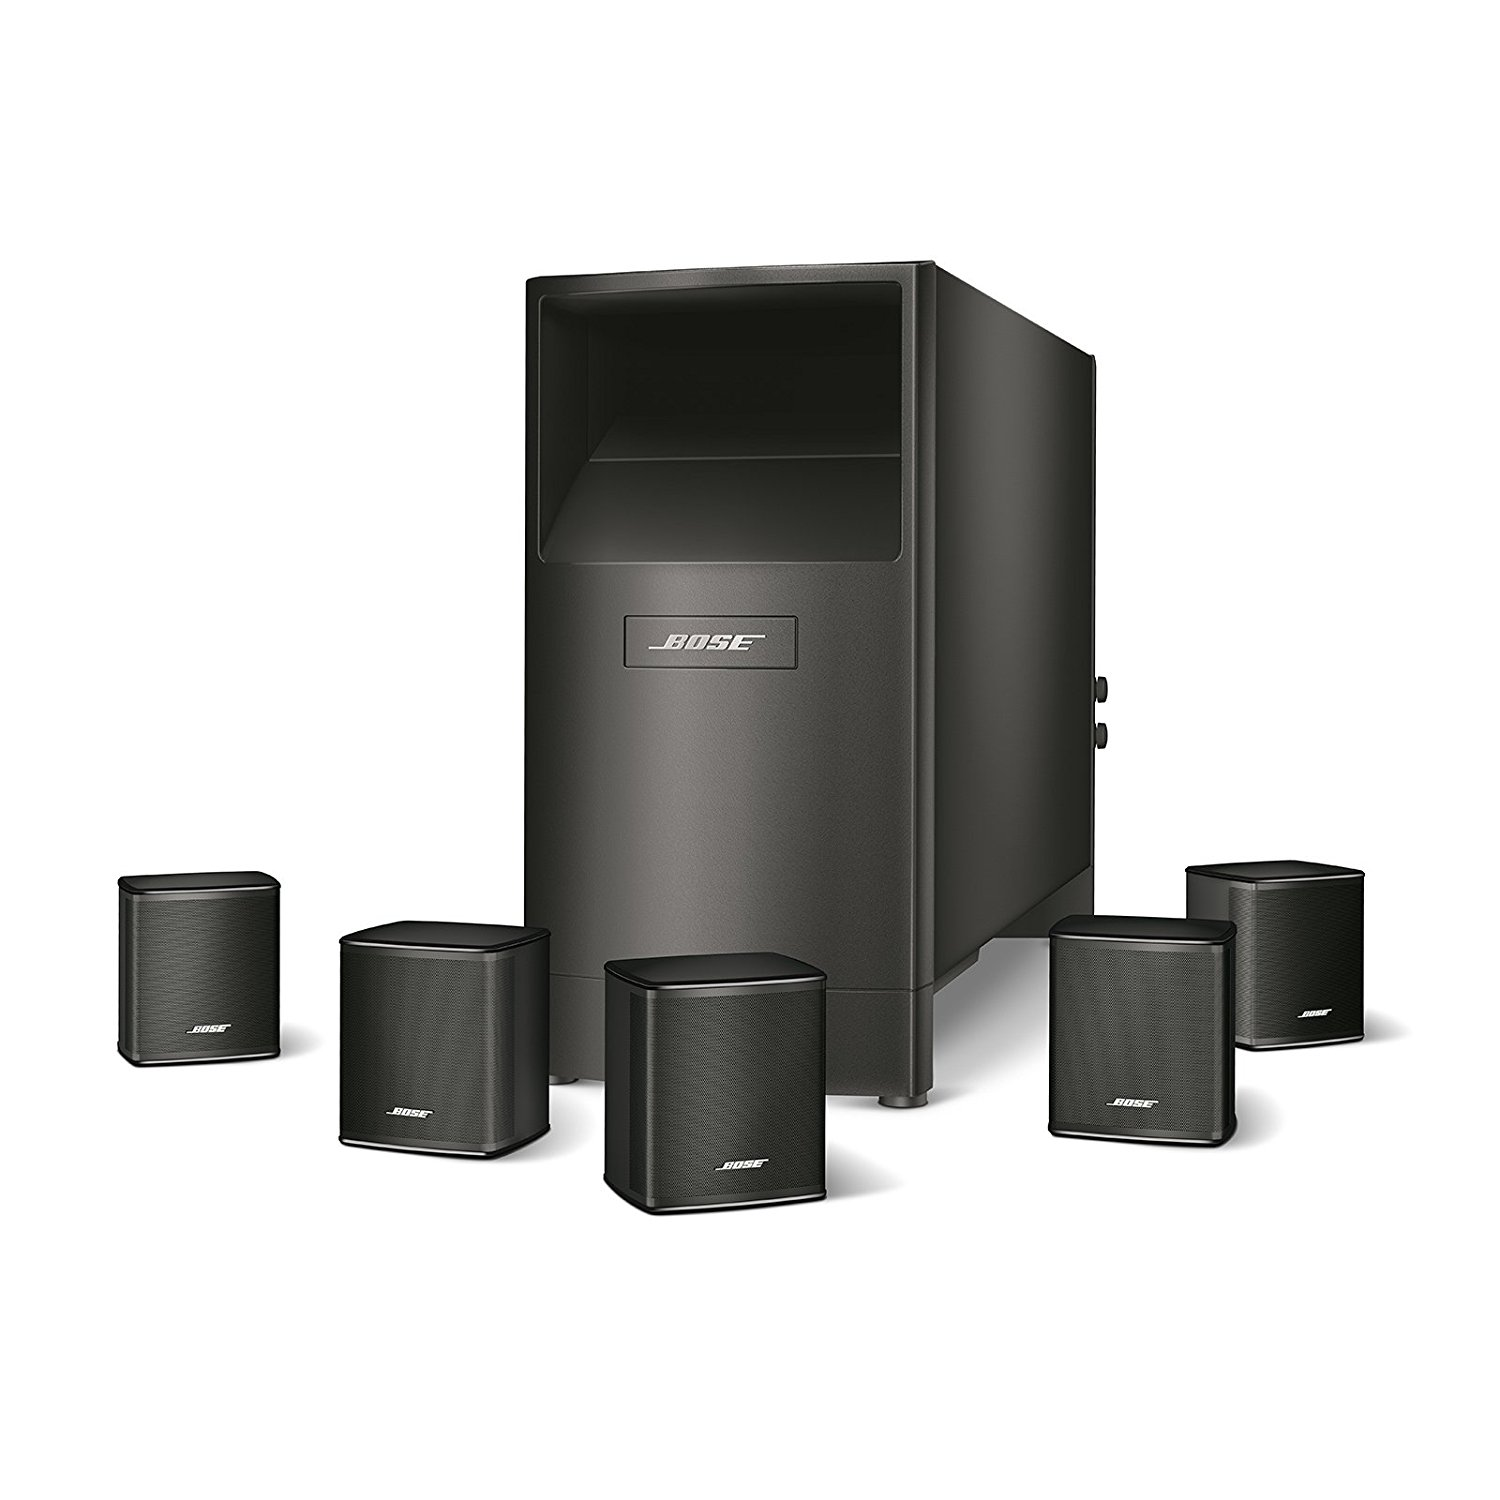 bose-acoustimass-6-series-v-home-theater-speaker-system-speakers-under-1000